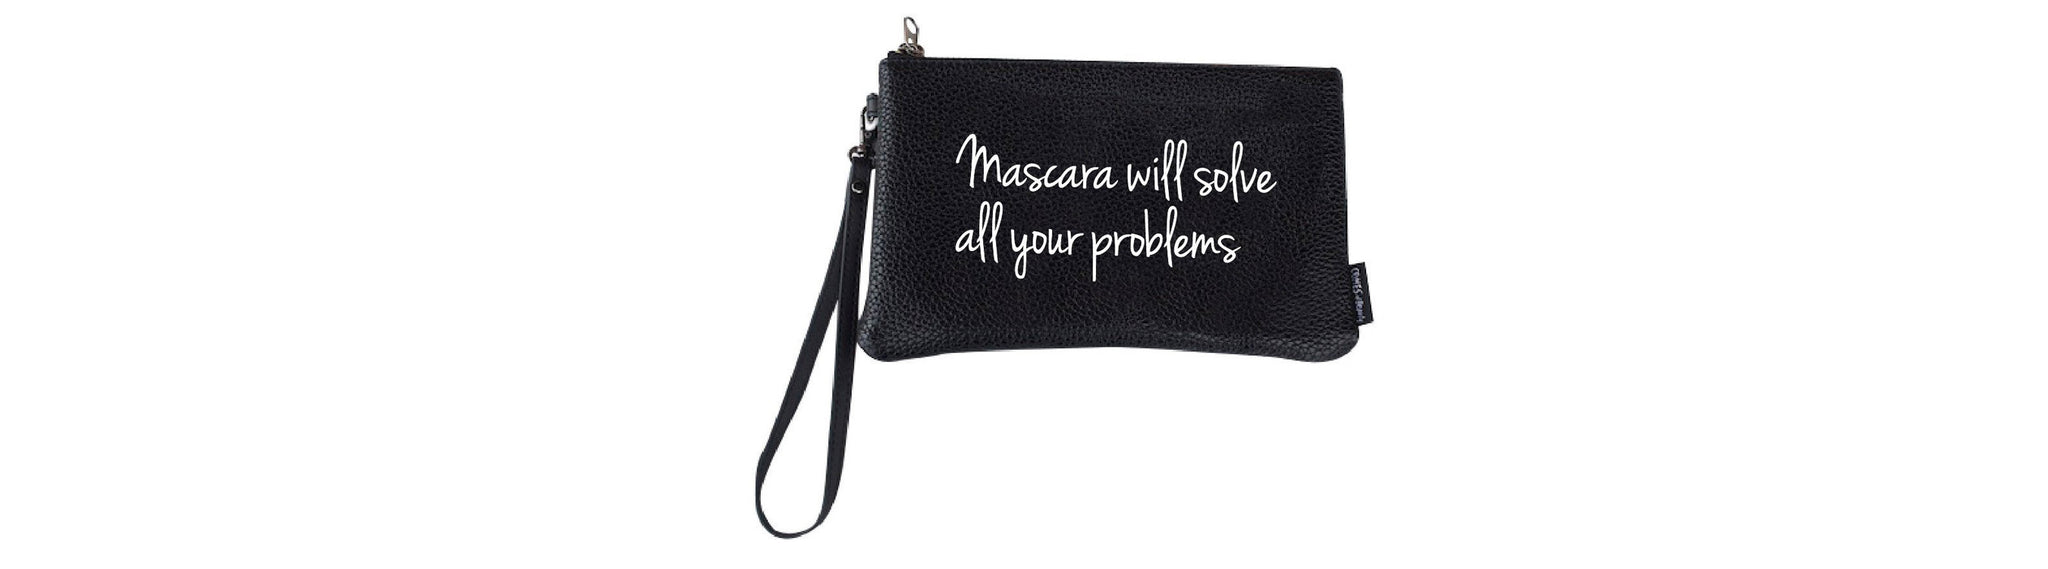 PRINTED WRISTLET MAKEUP BAG- MASCARA WILL SOLVE ALL YOUR PROBLEMS